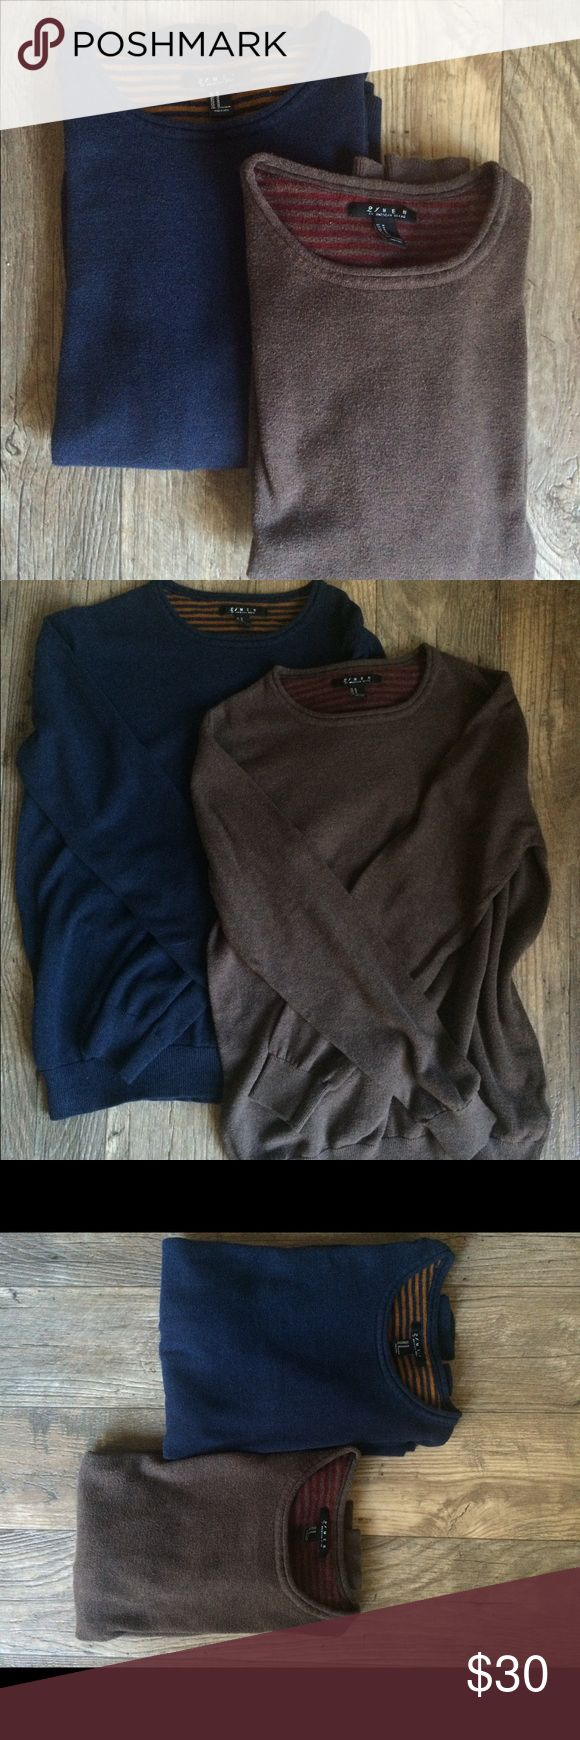 21 Men Sweaters These two Forever 21 Men's Sweaters are used in good condition. They are a bit too small on me so I hope someone else can enjoy them for the coming cooler months. $30 for both 21men Shirts Sweatshirts & Hoodies